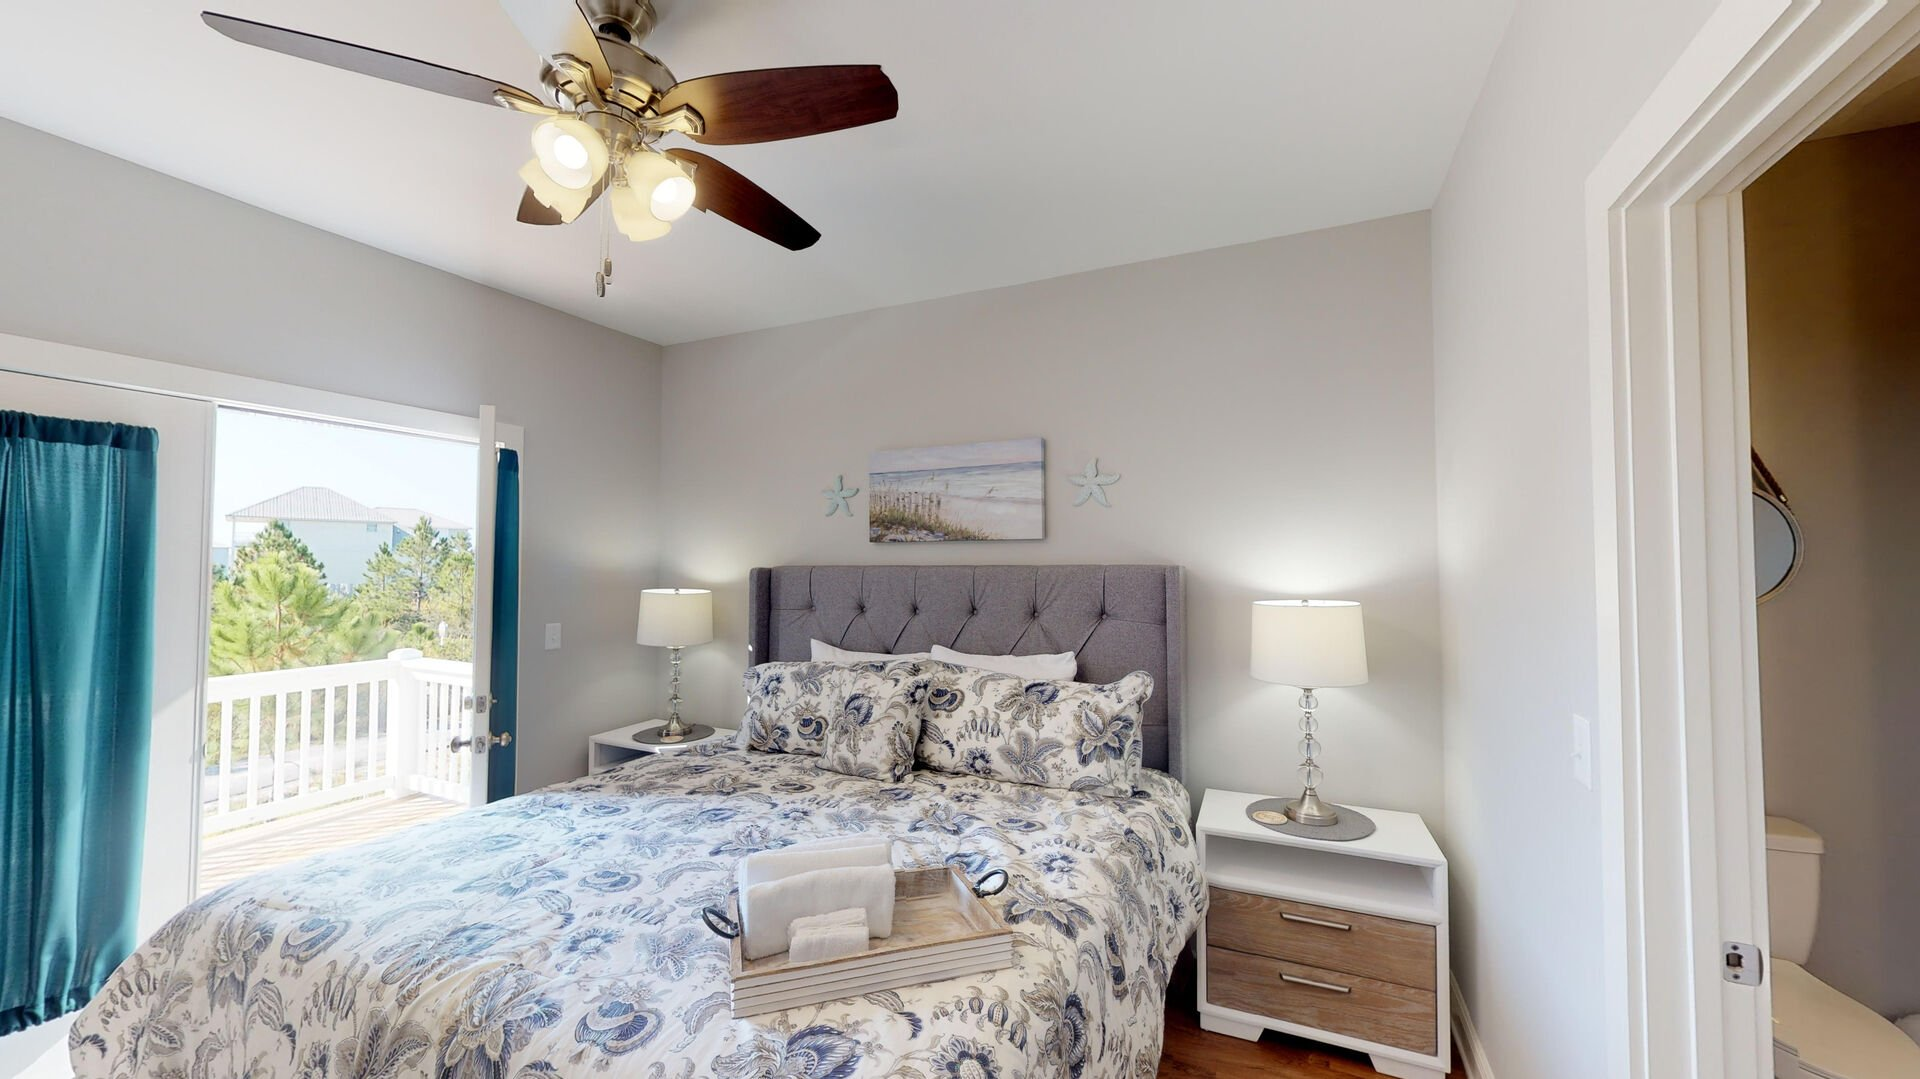 Large Bed, Nightstands, Lamps, Ceiling Fan, and Door to the Balcony.